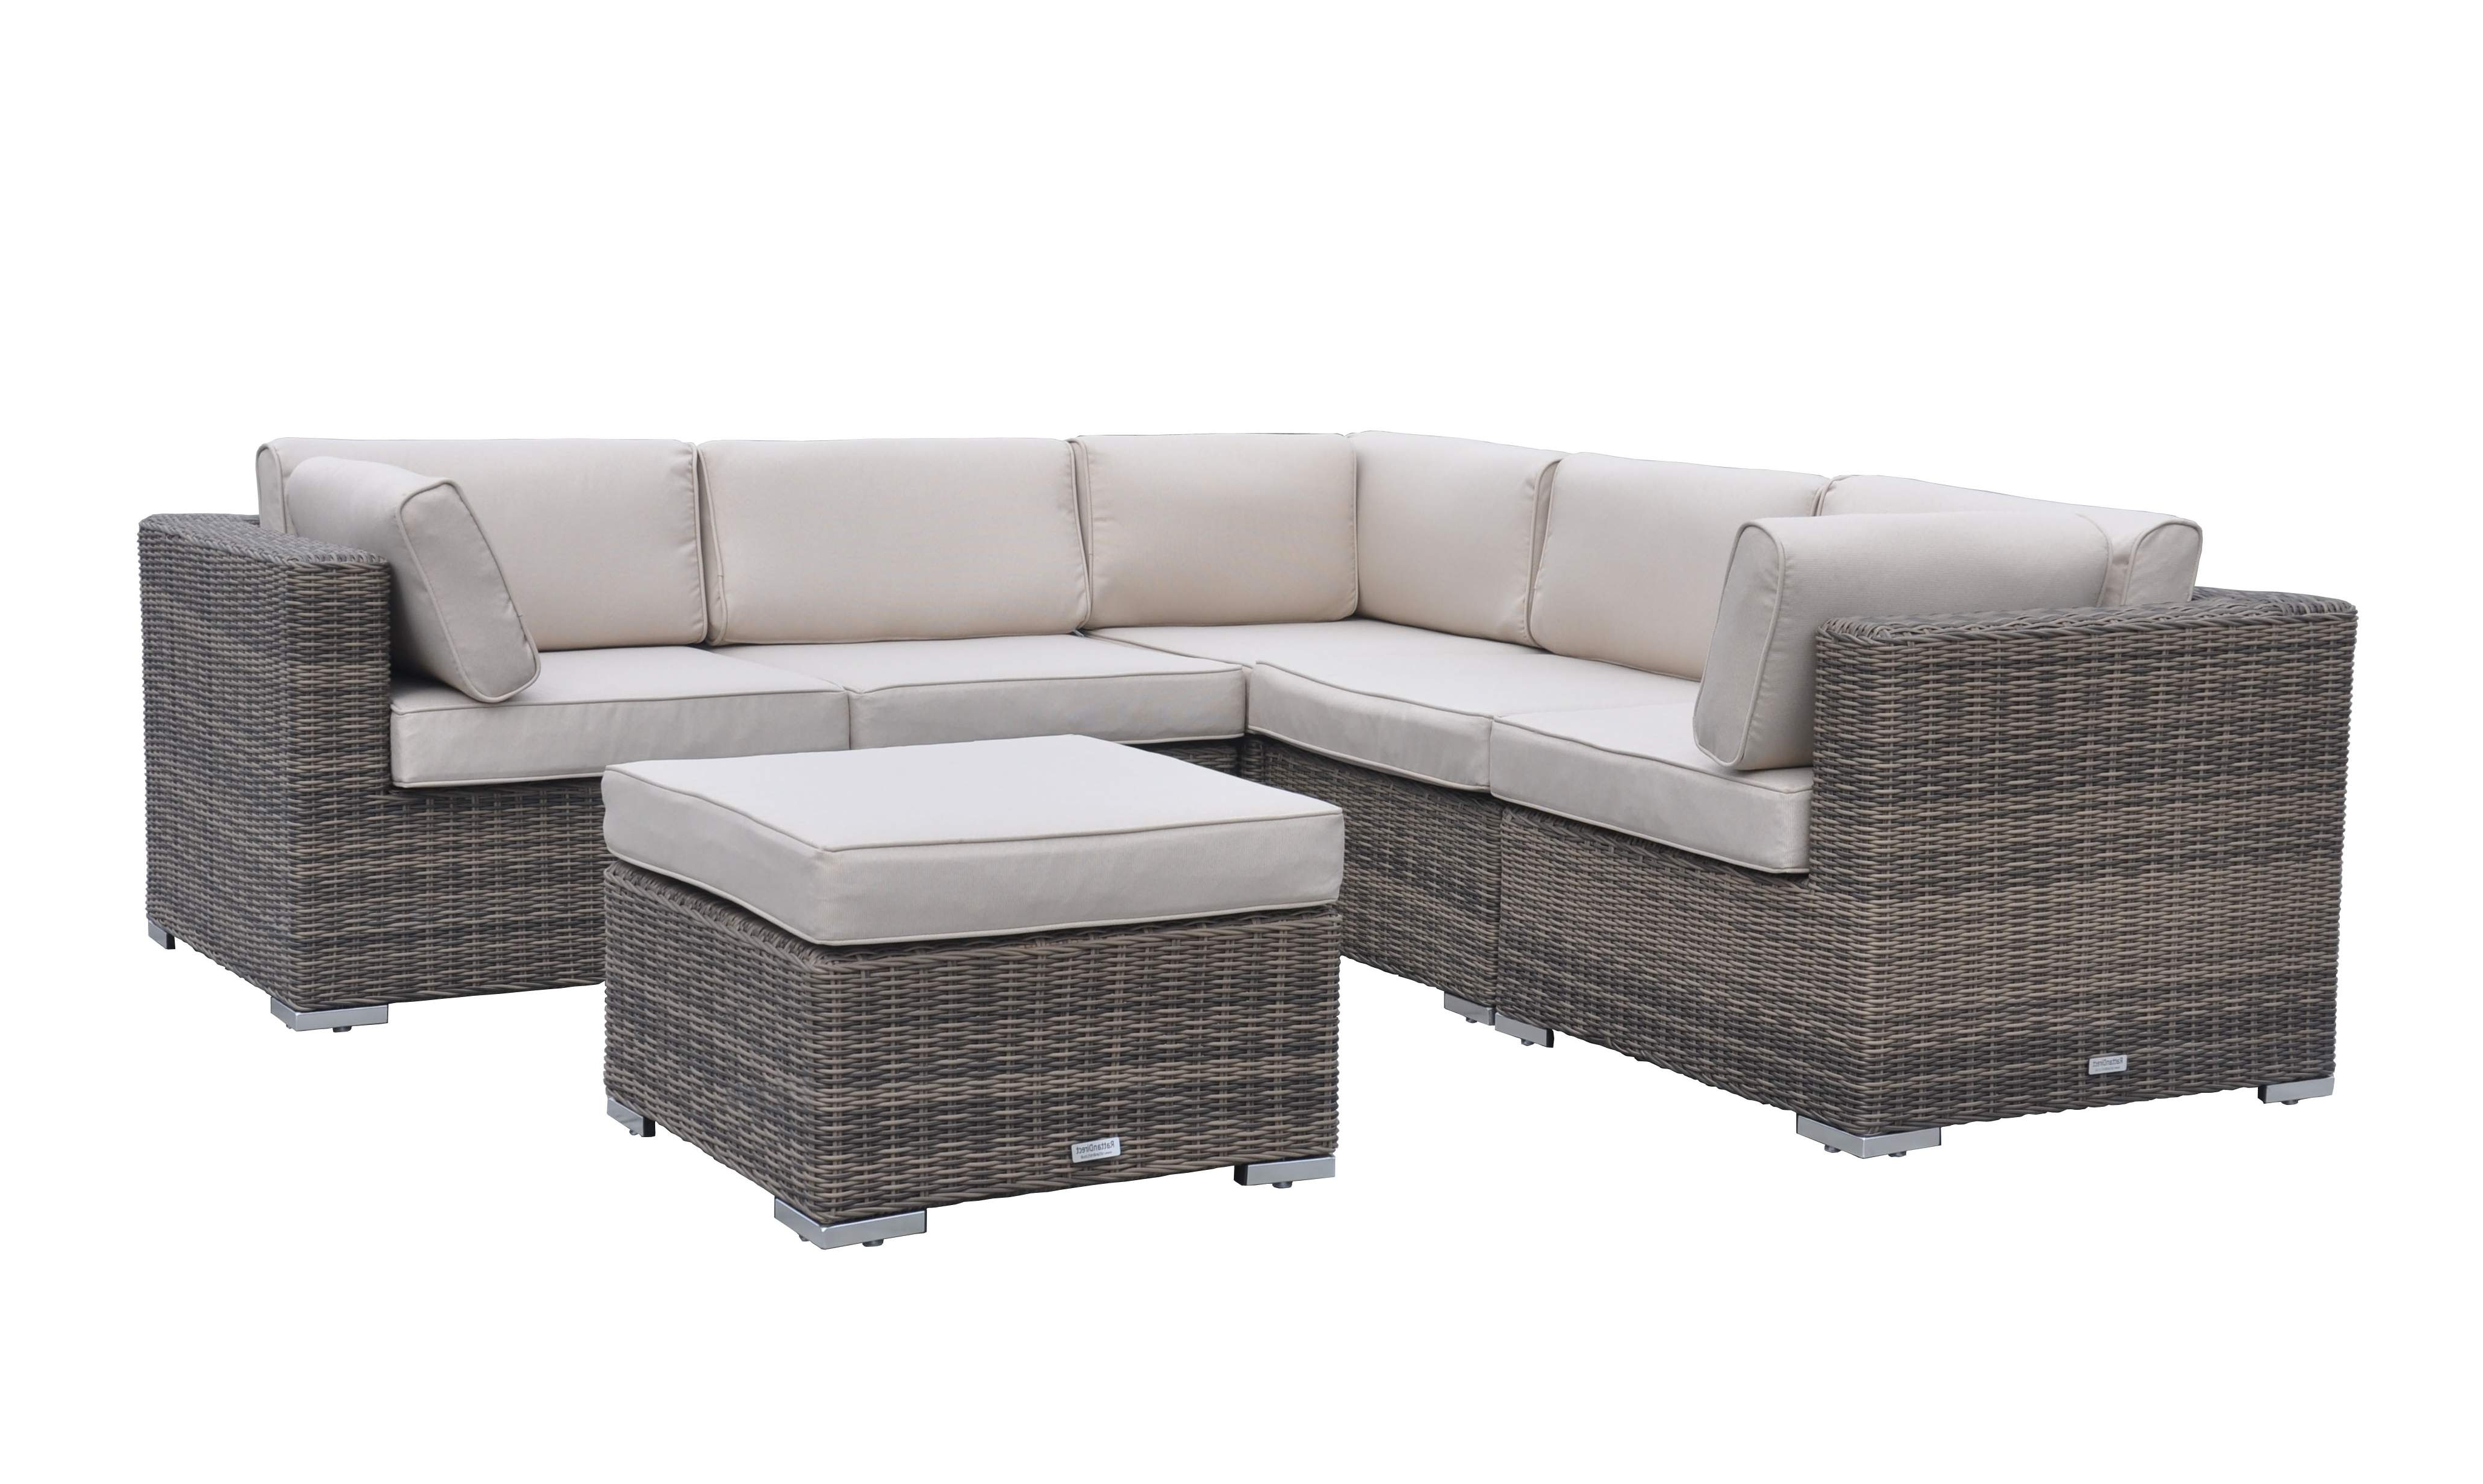 6 Piece Florida Corner Set – Truffle And Champagne Pertaining To Best And Newest Corner Sofa Chairs (Gallery 1 of 20)